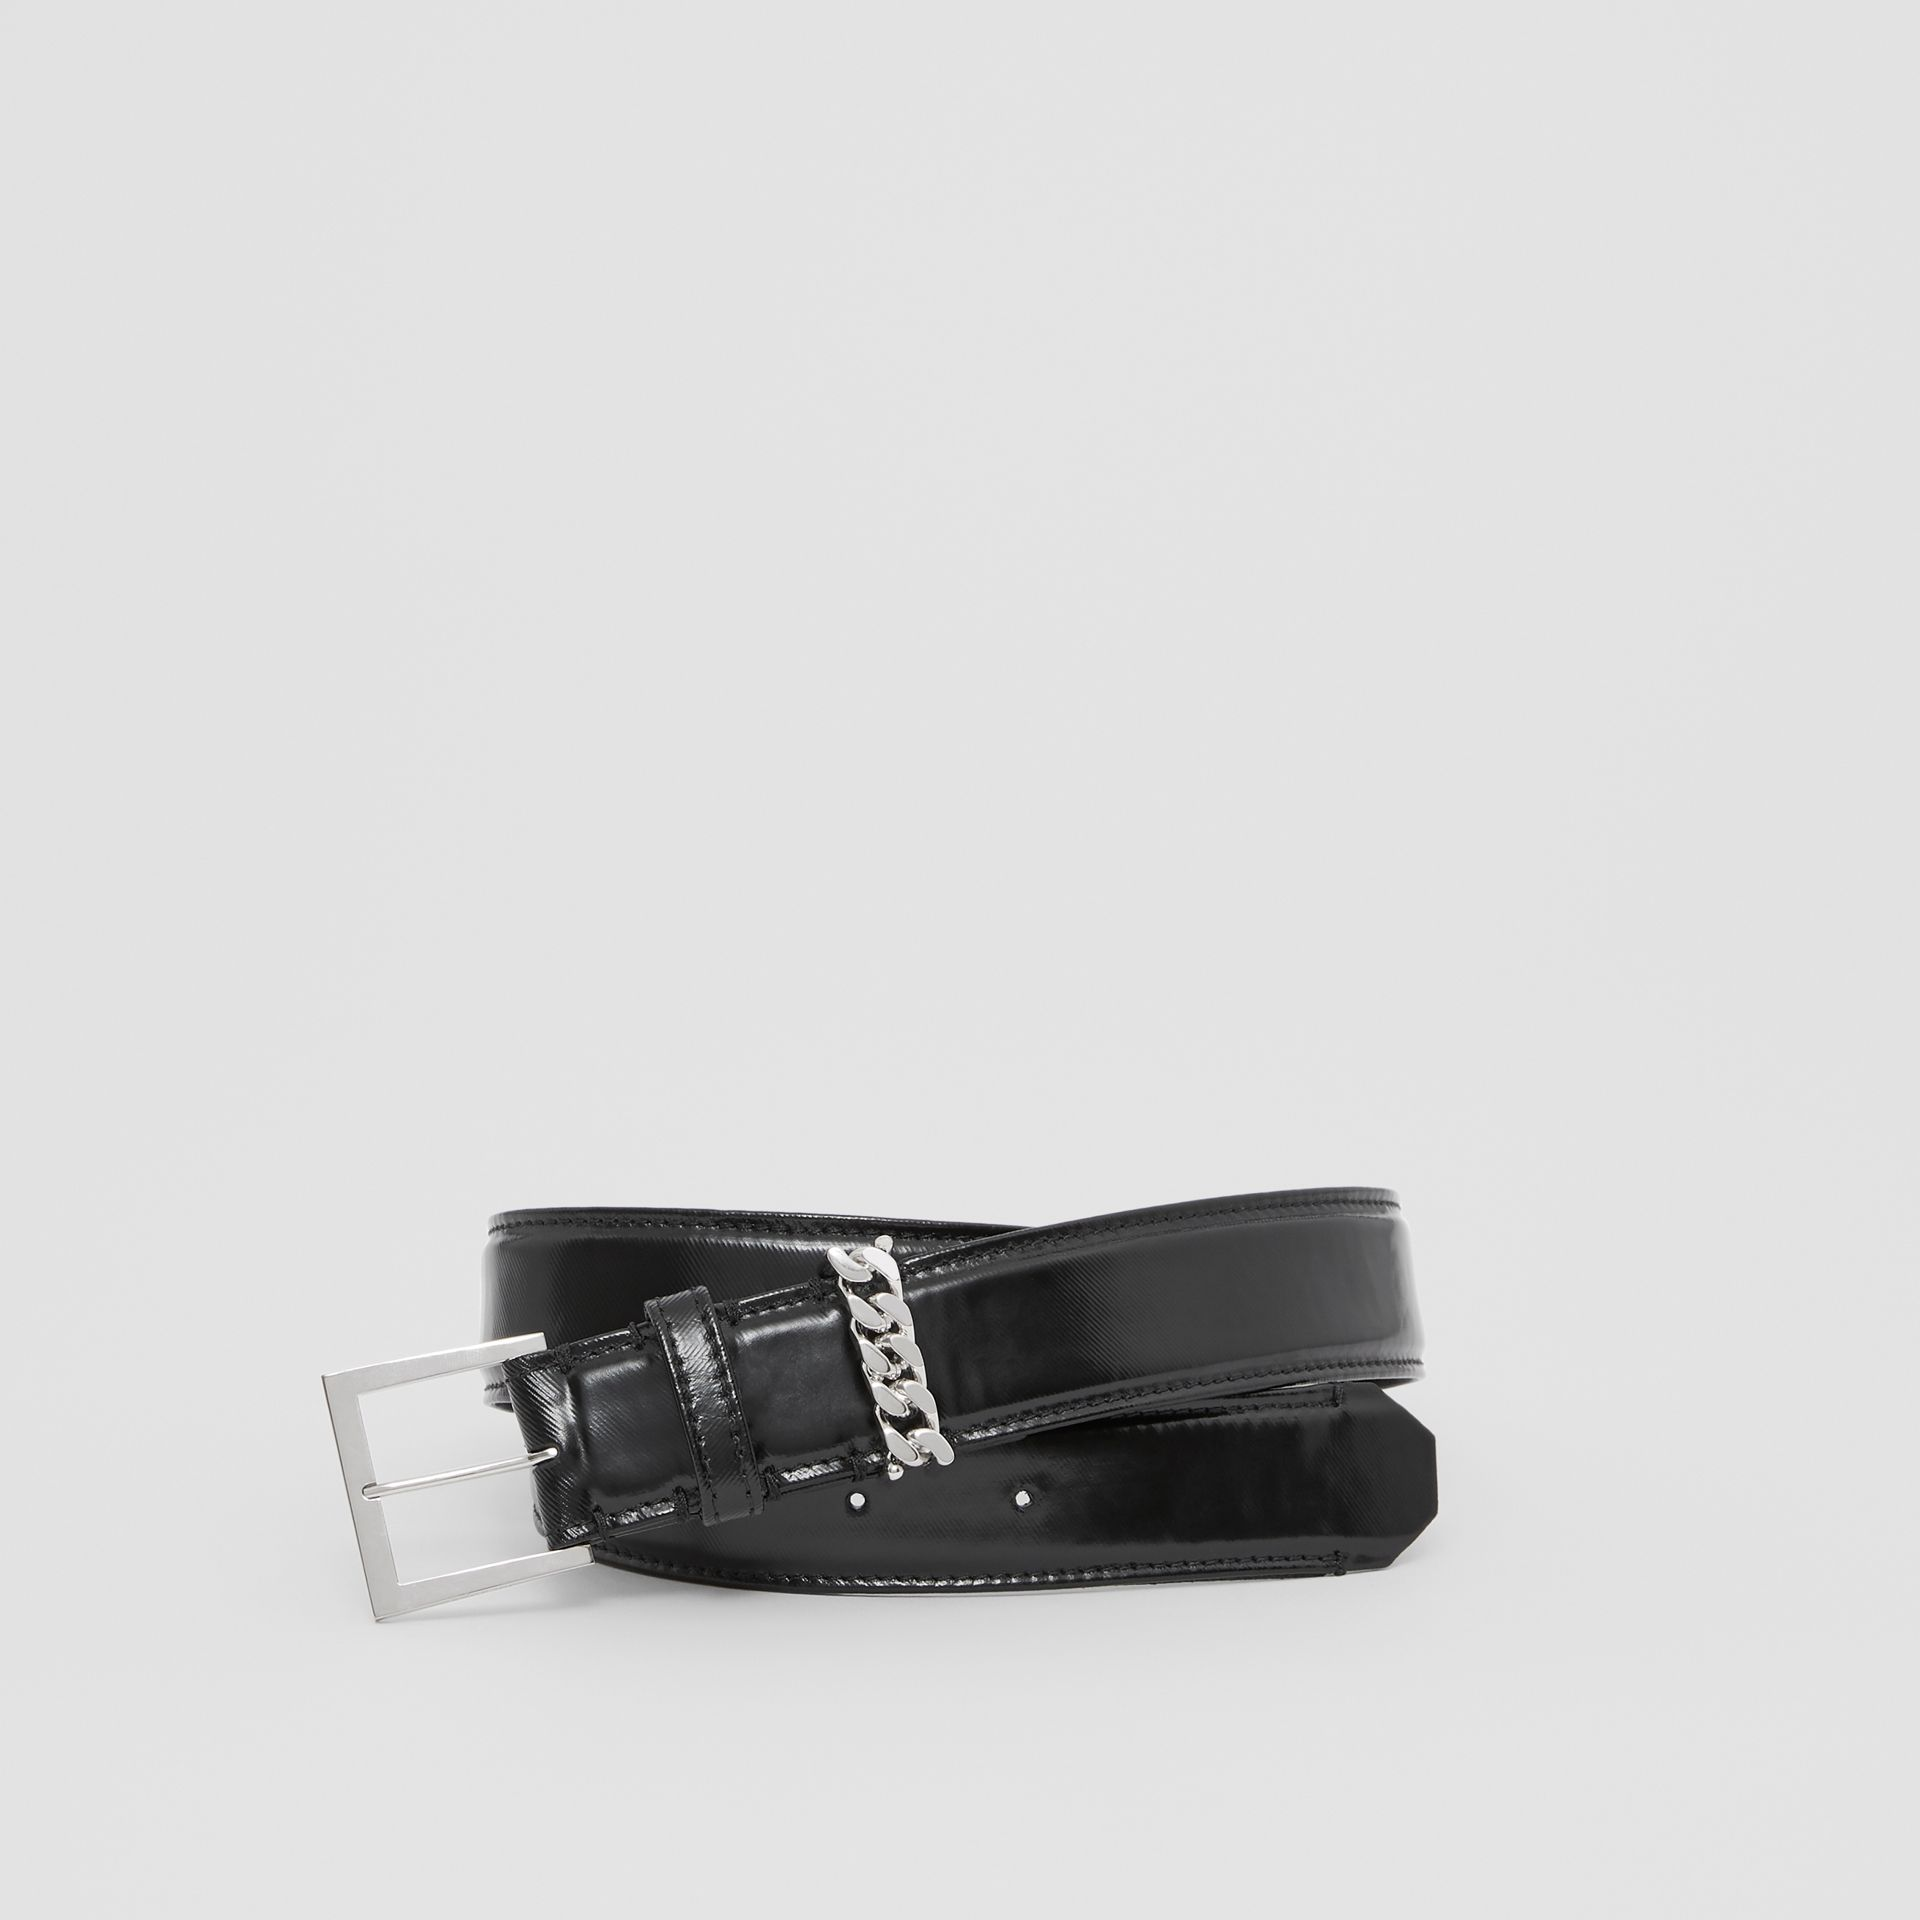 Chain Detail Horseferry Print Coated Canvas Belt in Black/palladium - Women | Burberry - gallery image 0